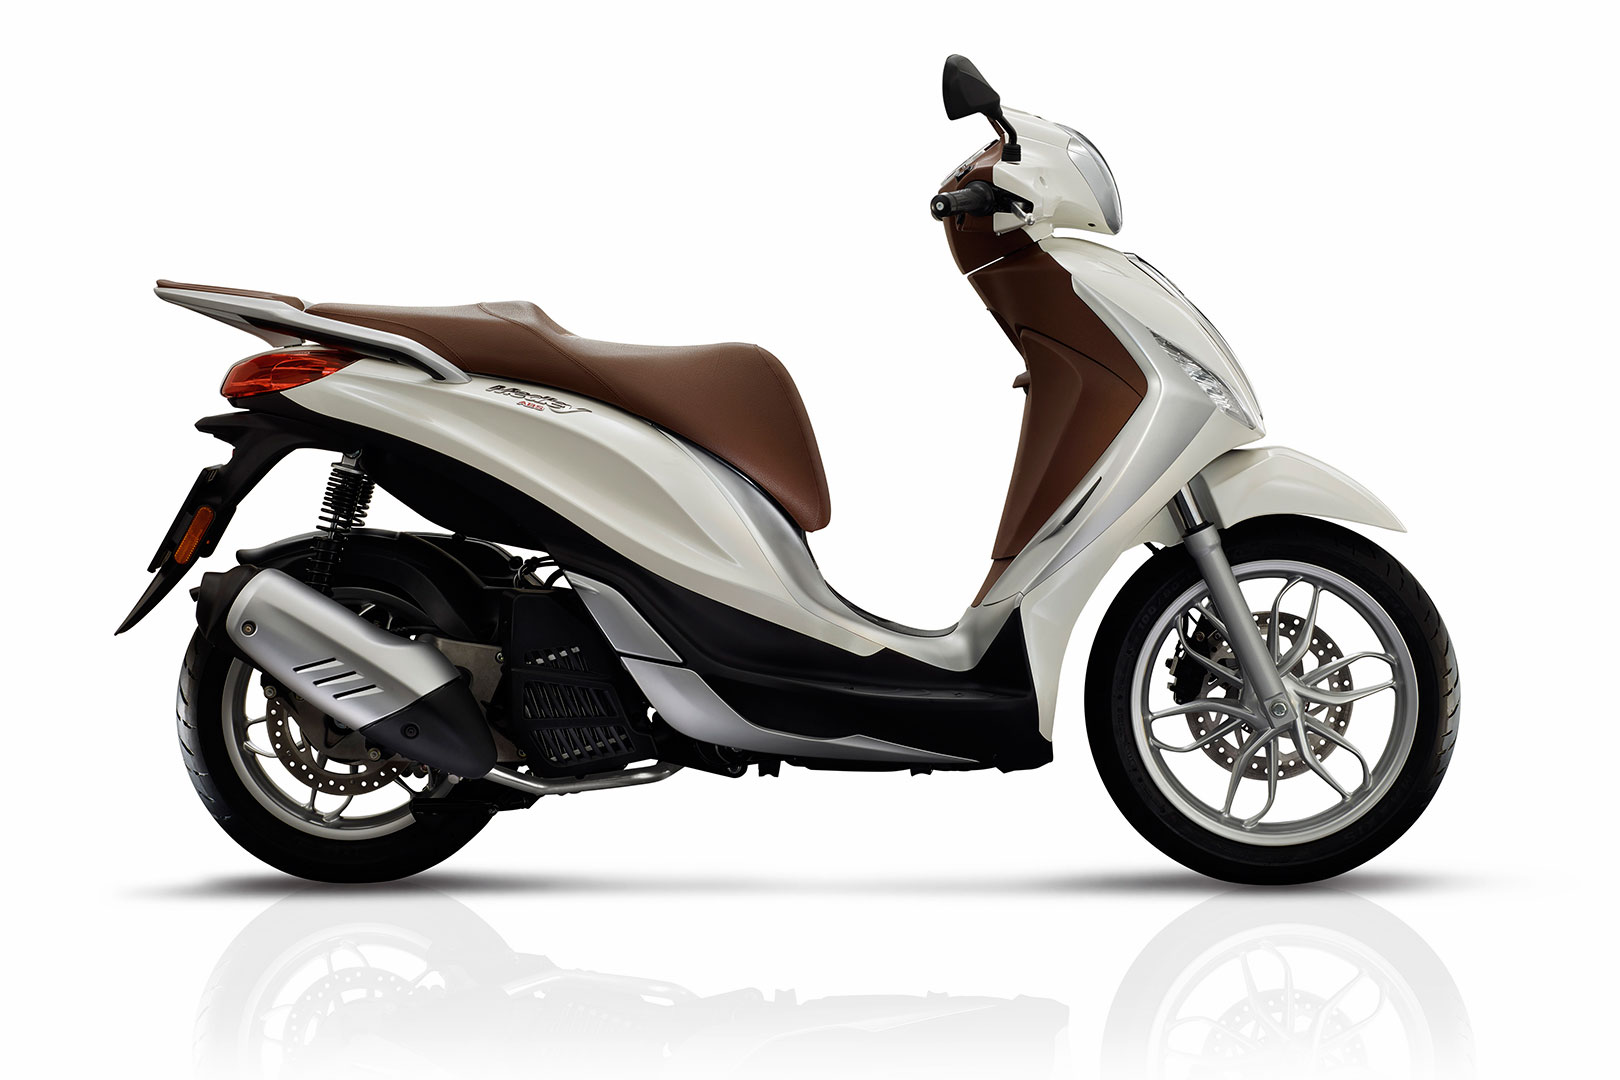 Achat Piaggio Medley ABS 125 cm3 neuf à Nice chez Scoot Center-2